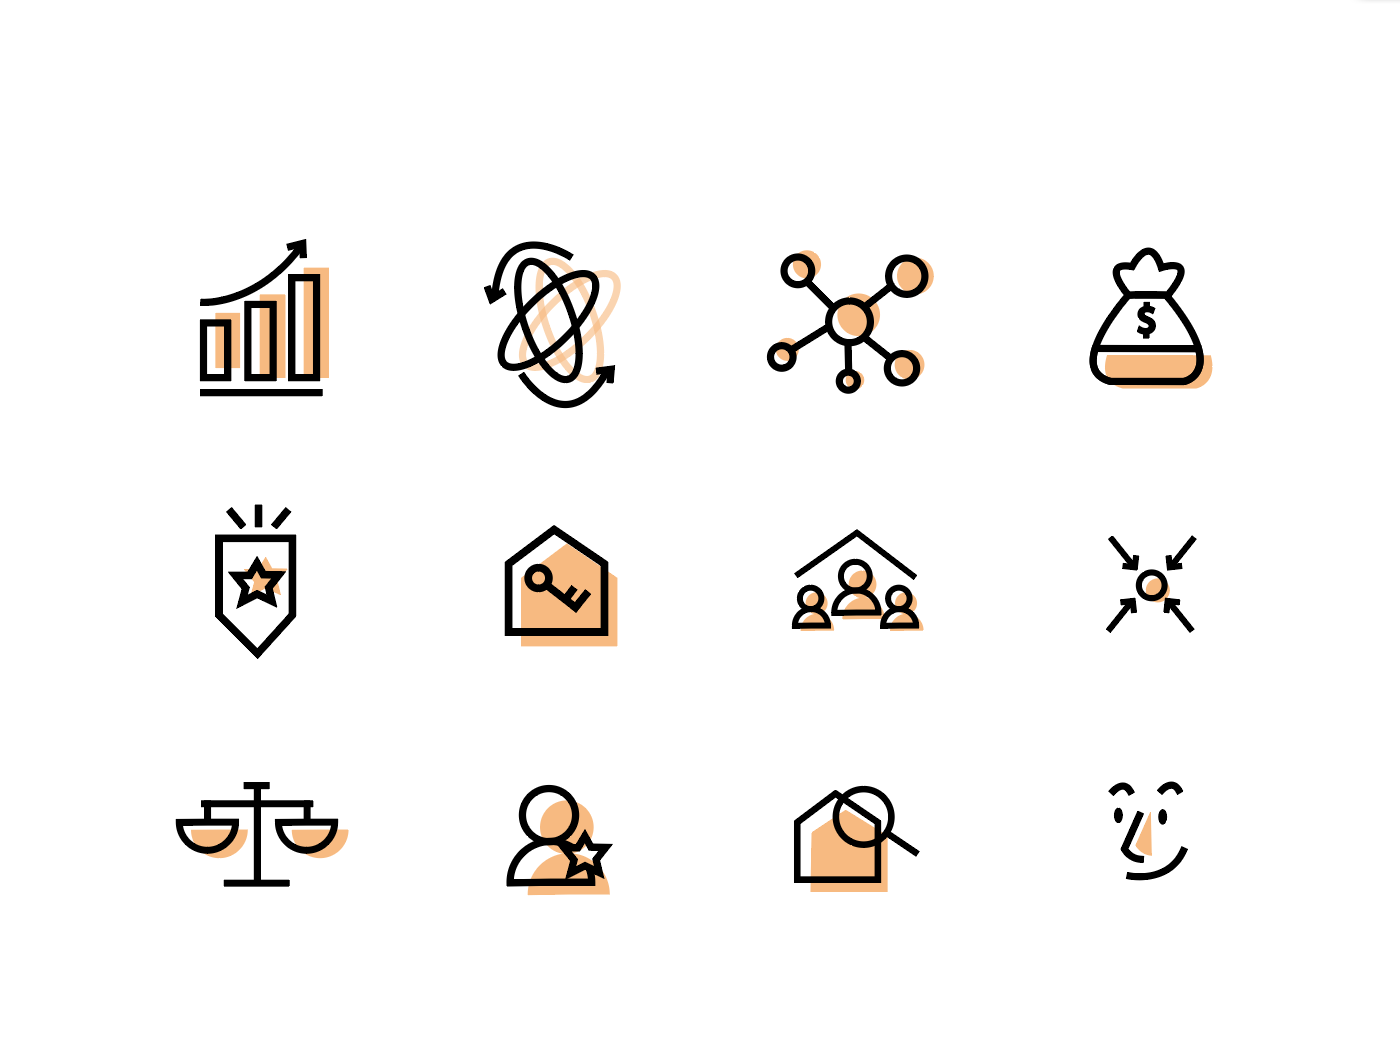 Real estate icons branding icon illustration design